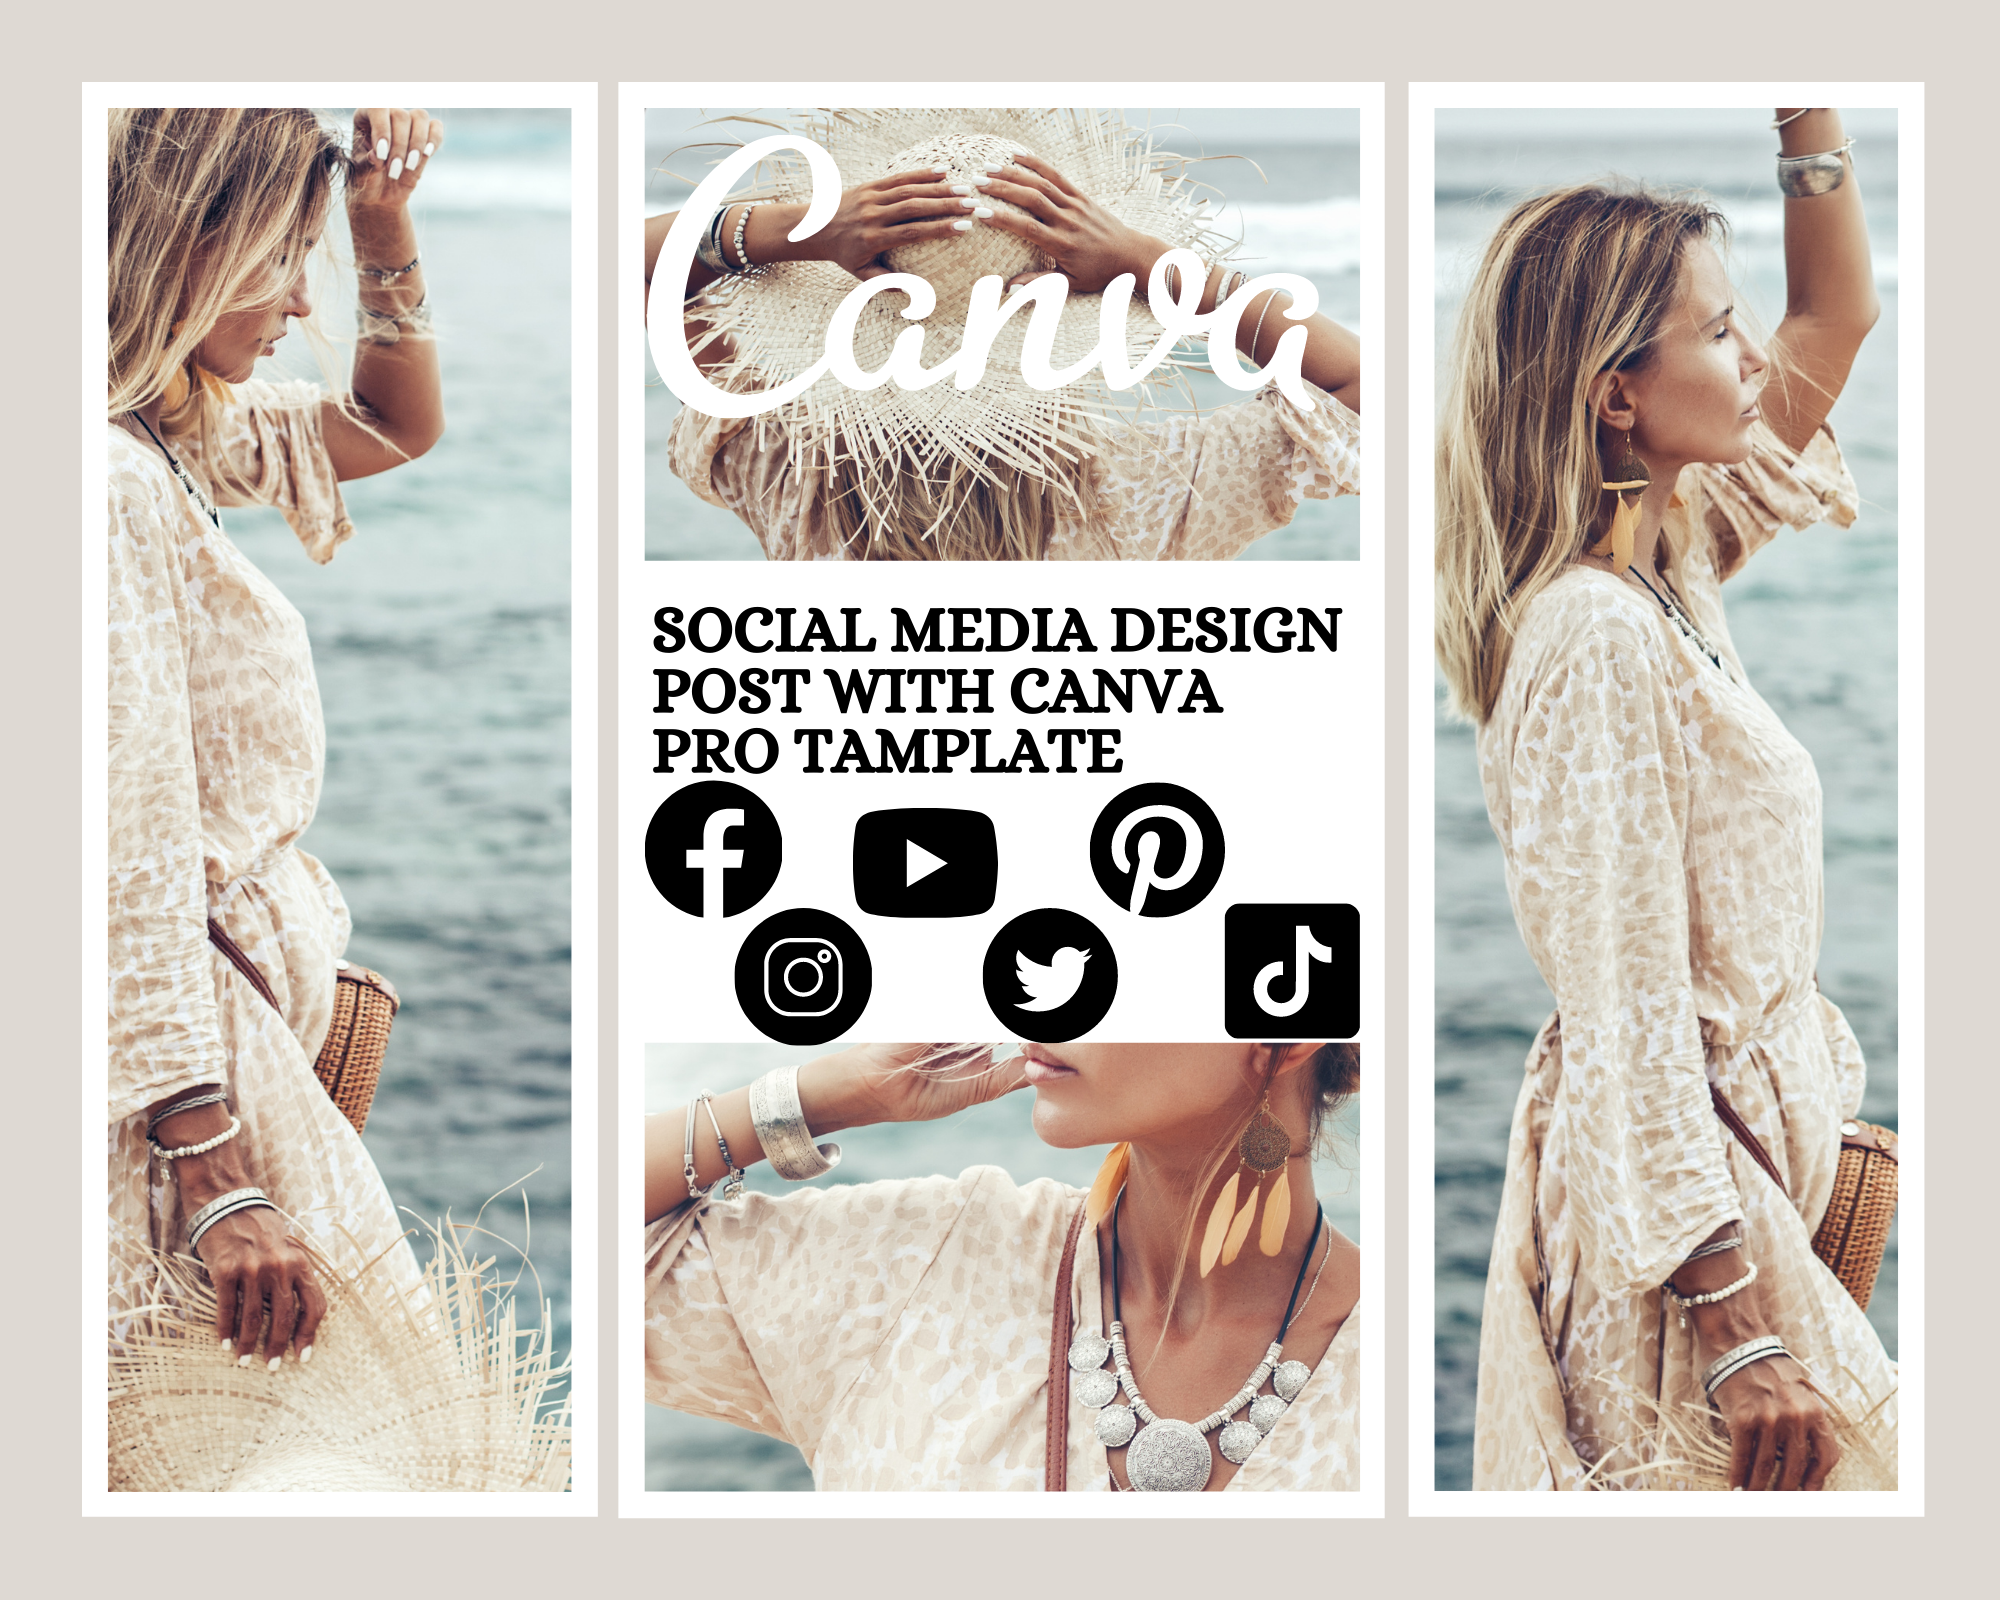 design social media post with canva pro template